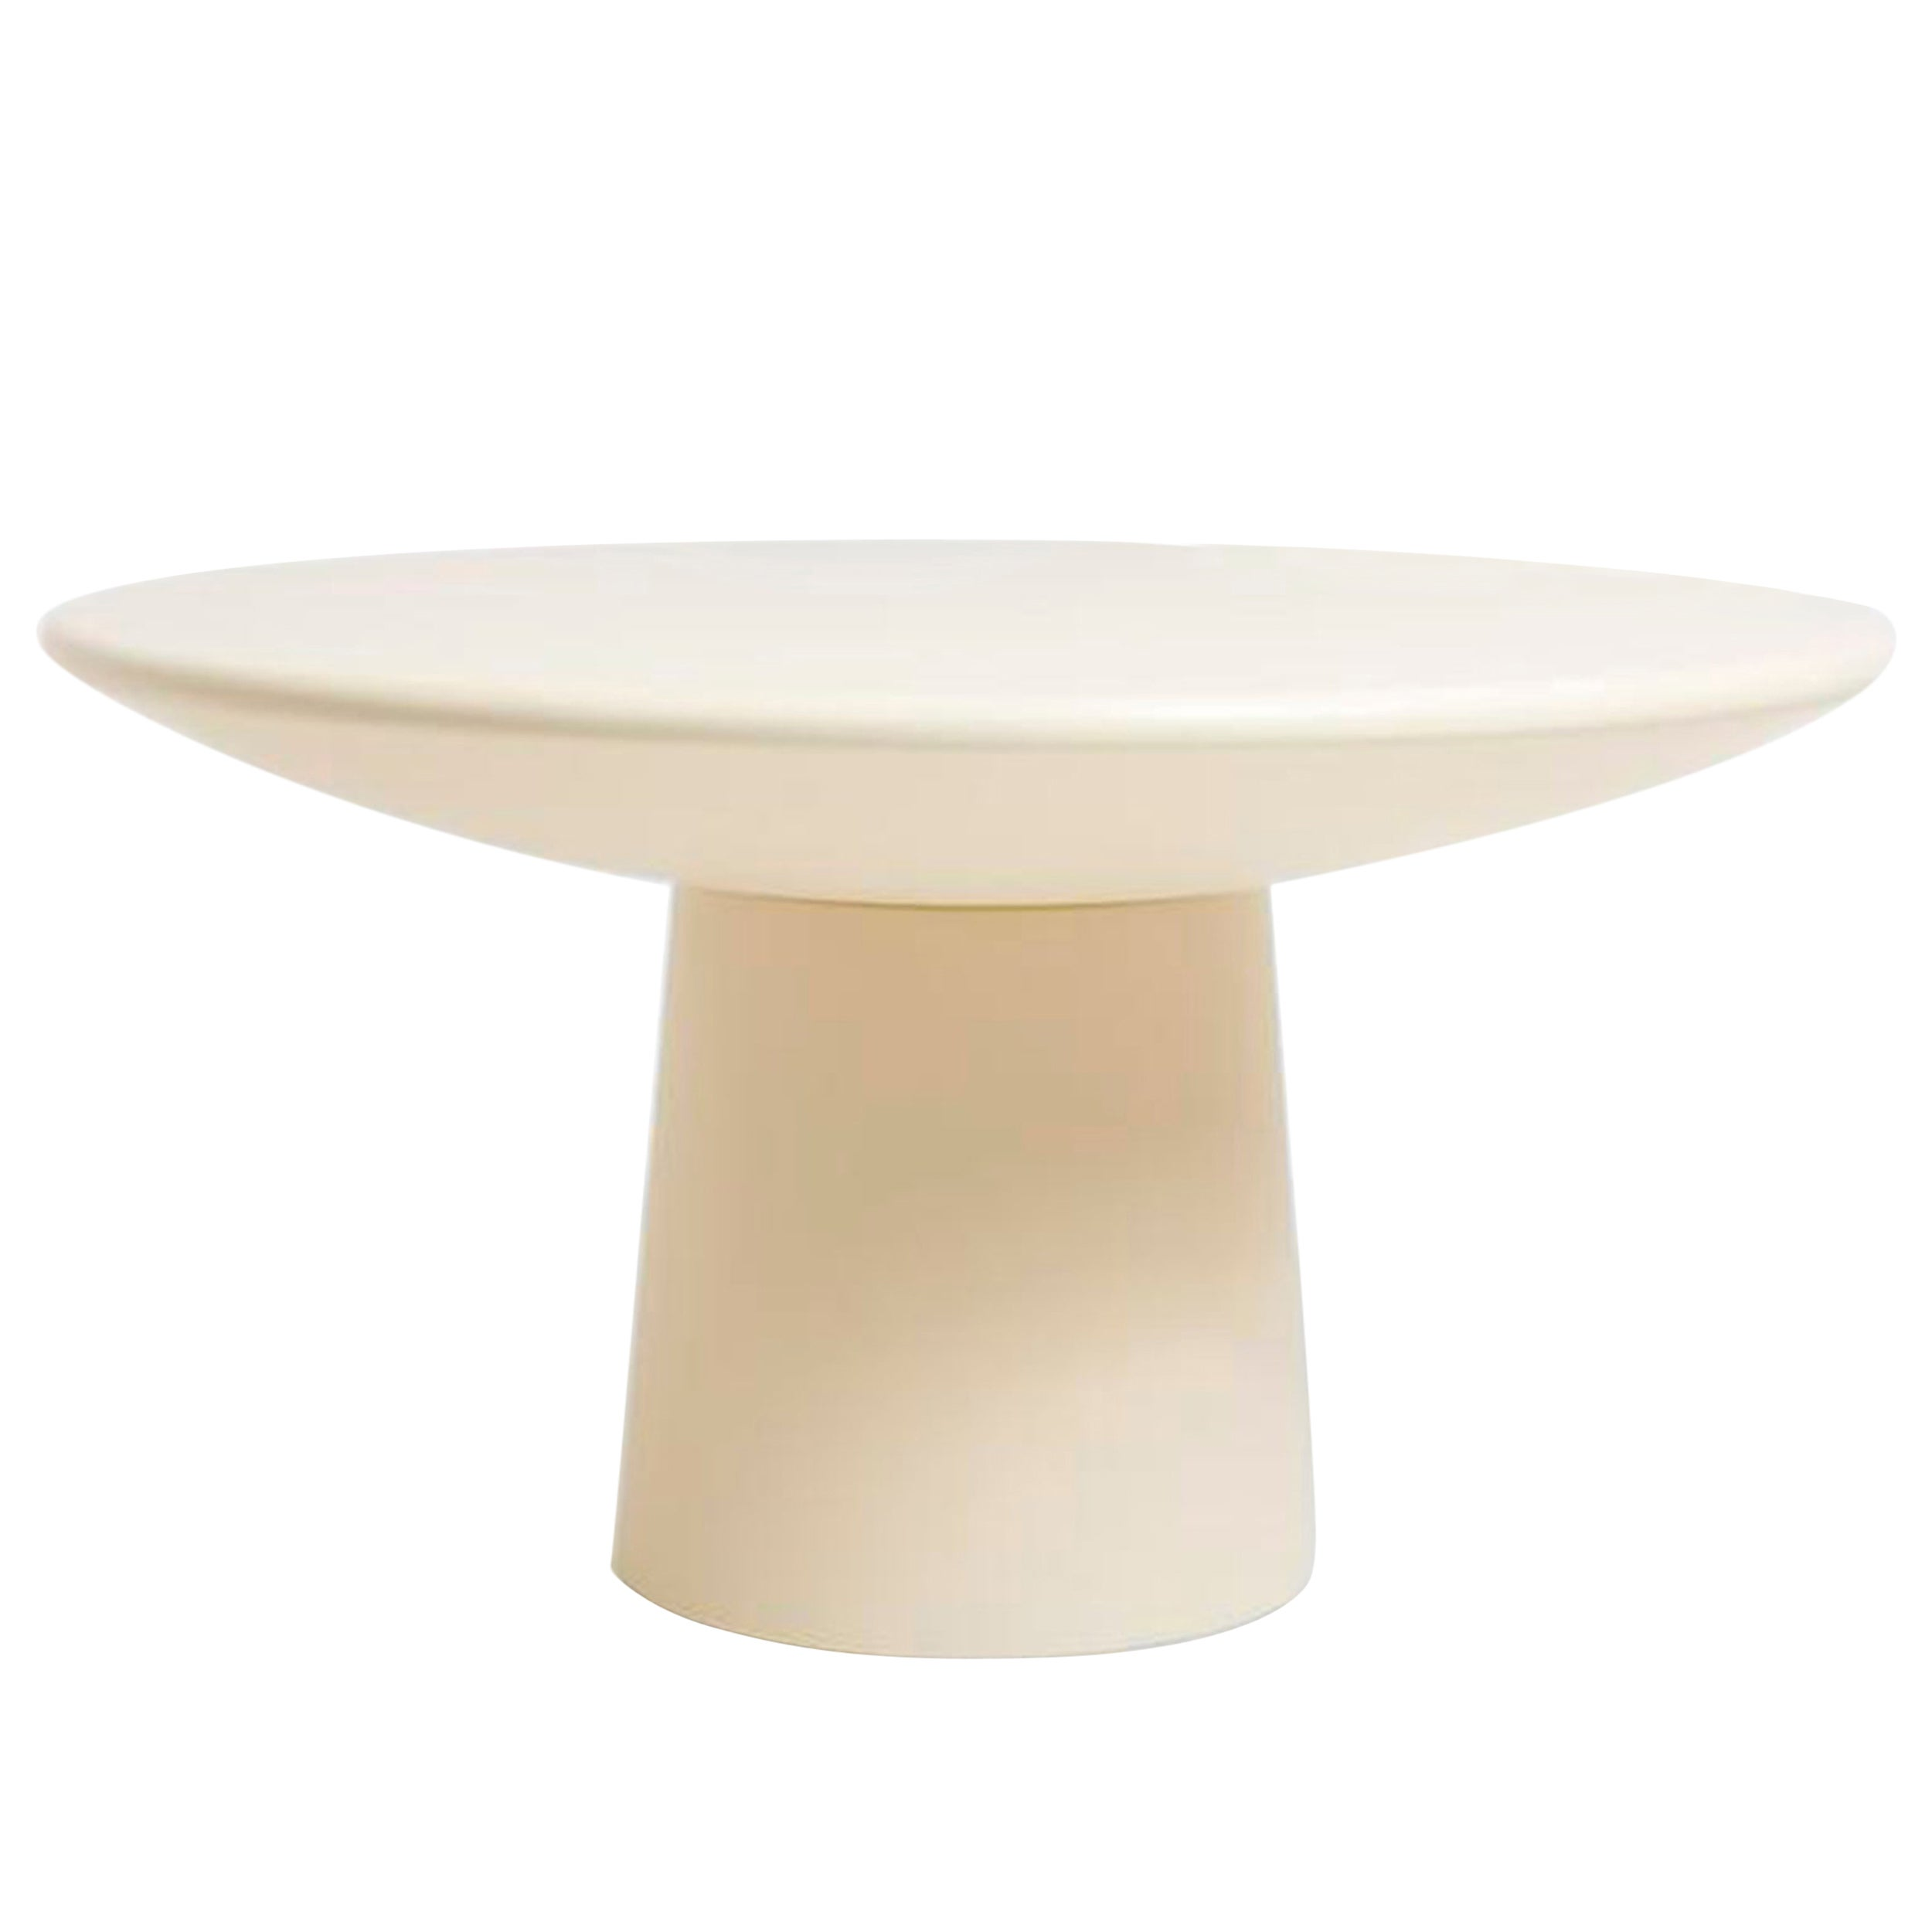 Faye Toogood, Roly Poly Dining Table, London, 2019, Contemporary Table